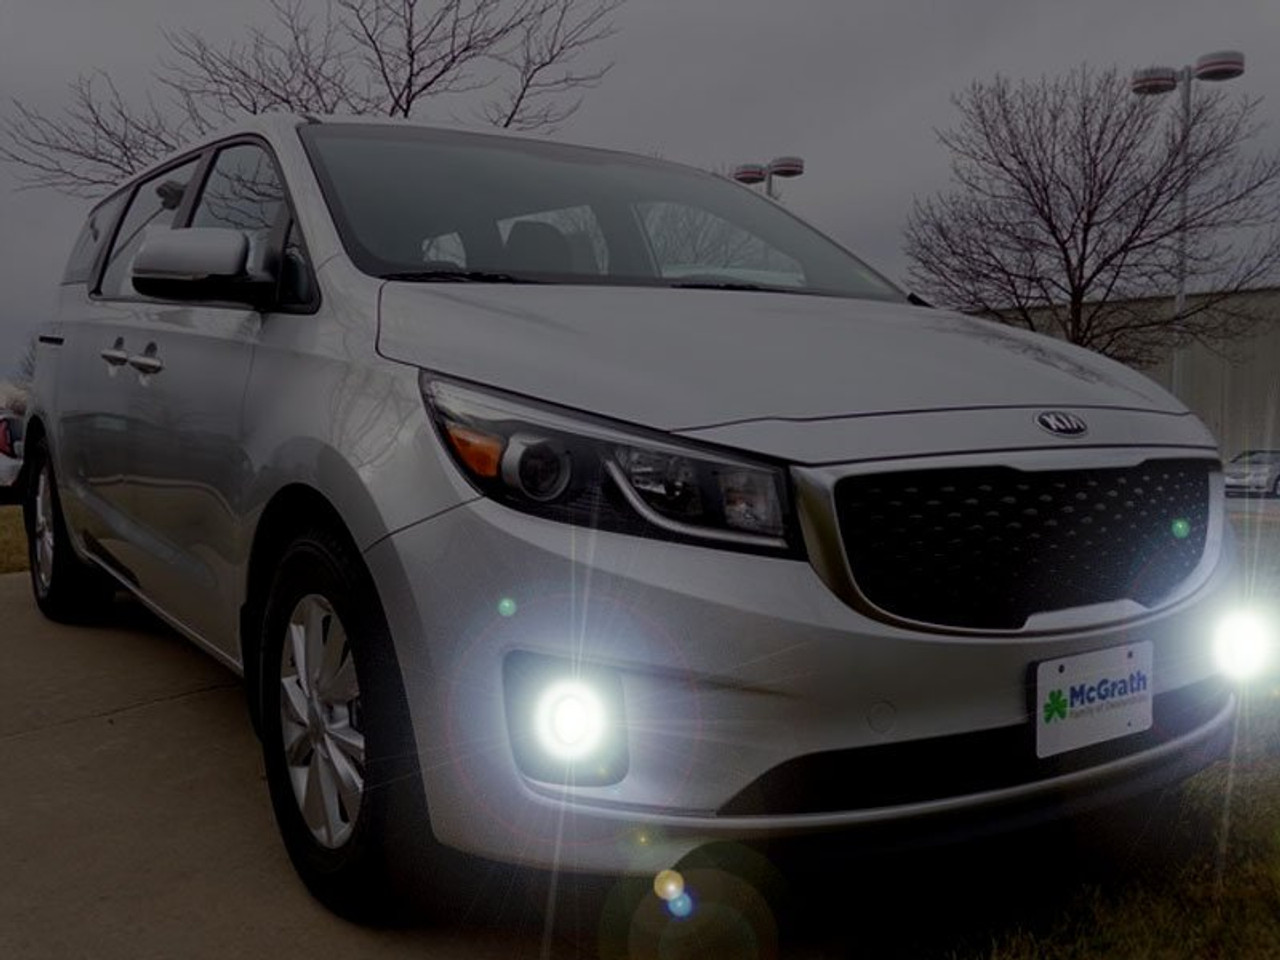 [SCHEMATICS_4FD]  2015 2016 2017 2018 Kia Sedona Limited Fog Lamps Driving Lights Kit -  BlingLights.com | 2015 Kia Sedona Fog Light Wiring Harness Kit |  | BlingLights.com